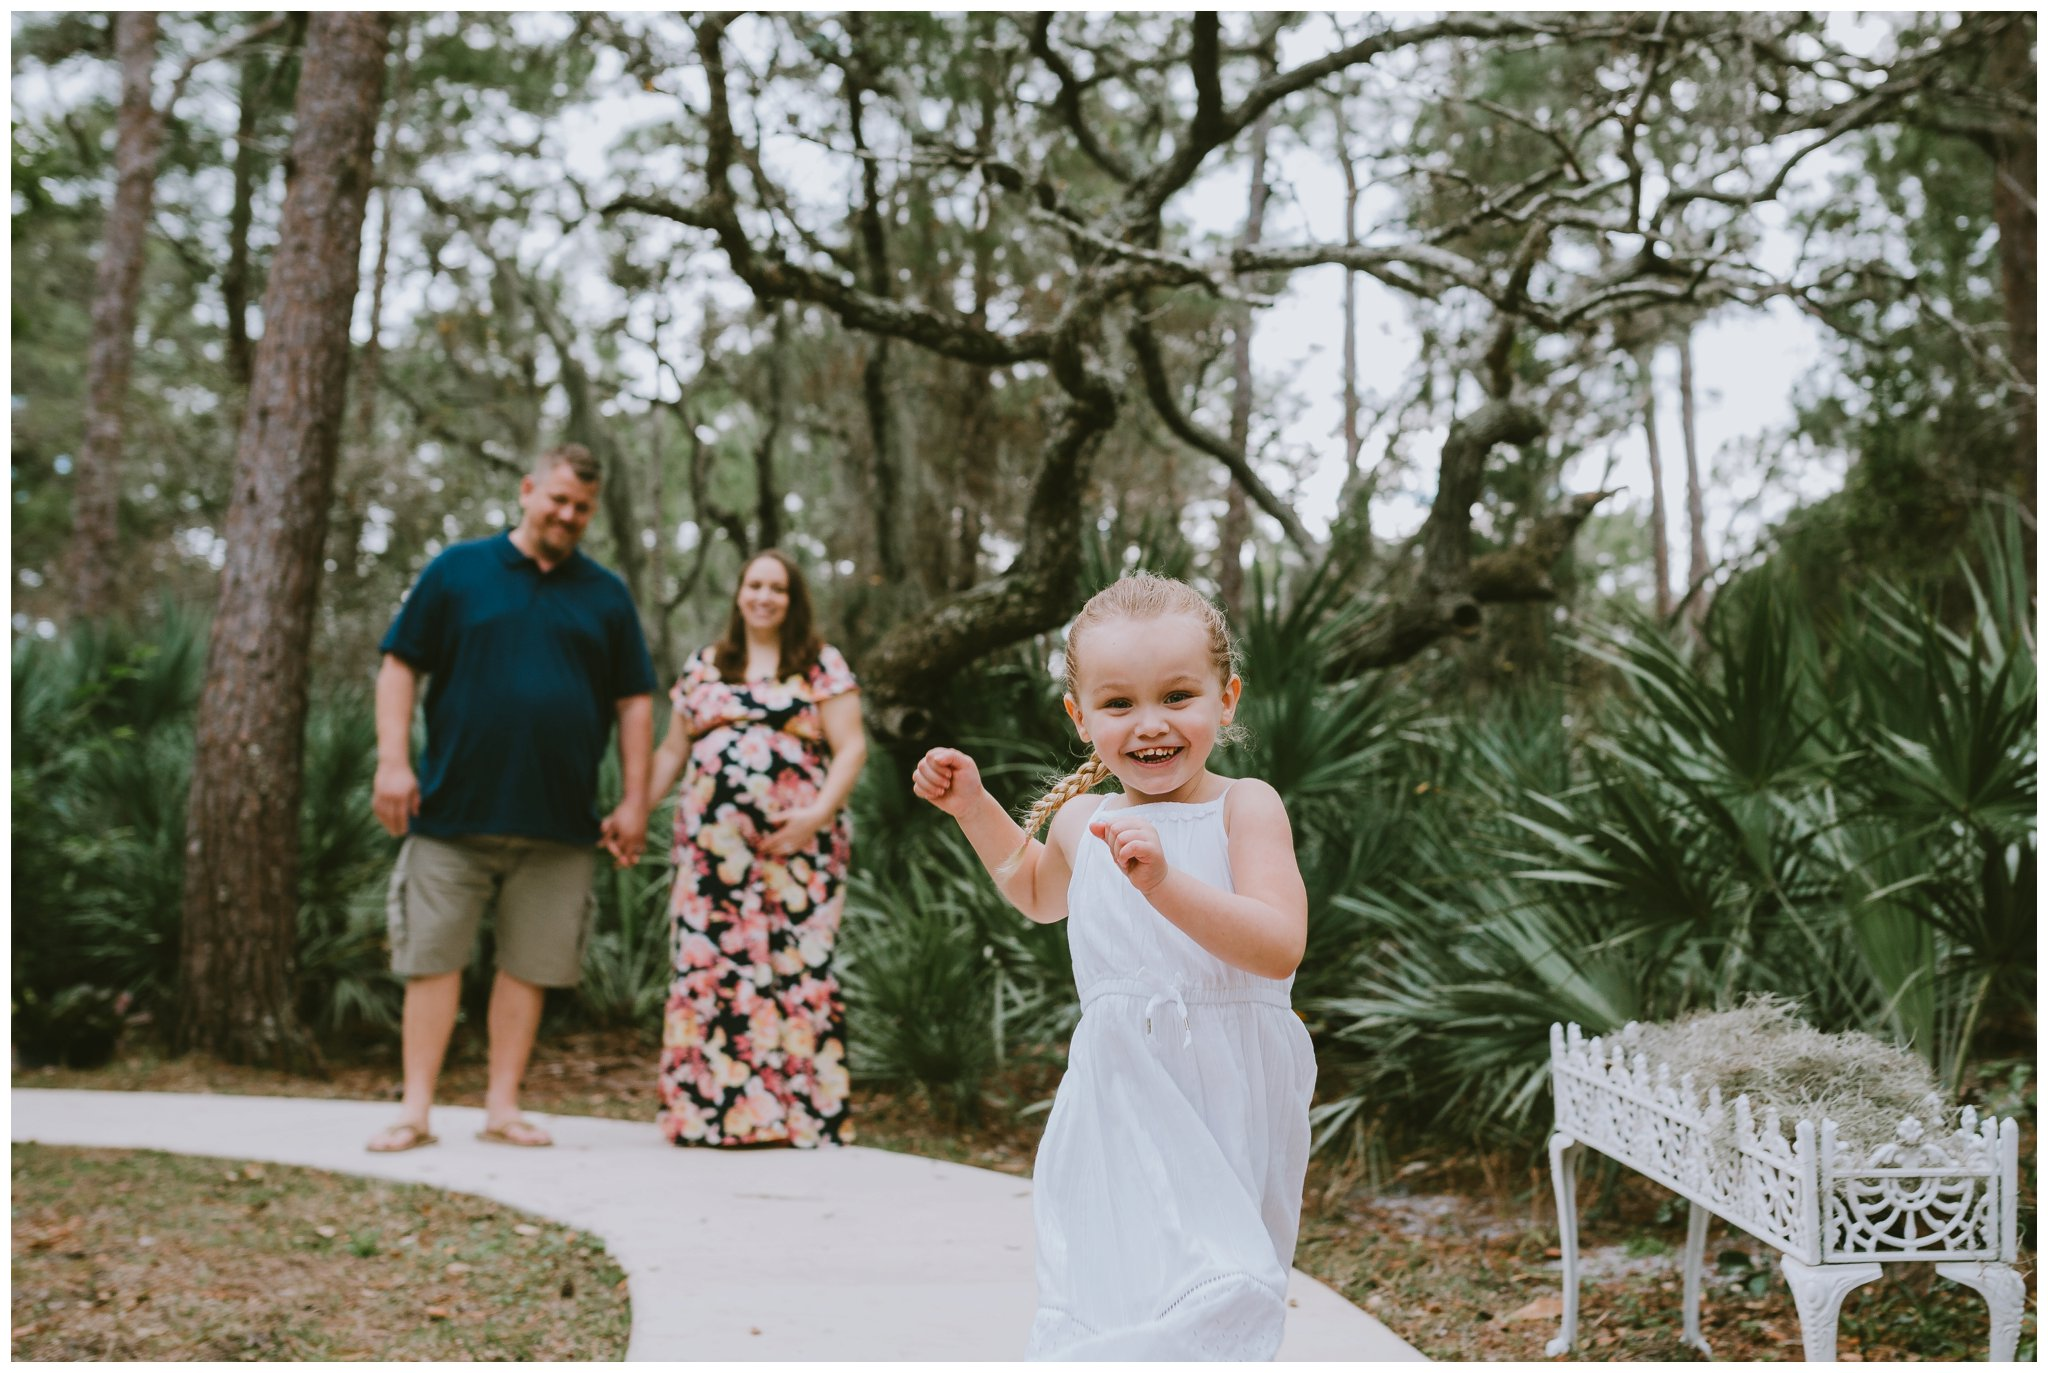 Kimberly Smith Photography| Port St Lucie Botanical Gardens| Maternity Photos| Jupiter Florida Photographer | Stuart Fl photographer_0201.jpg